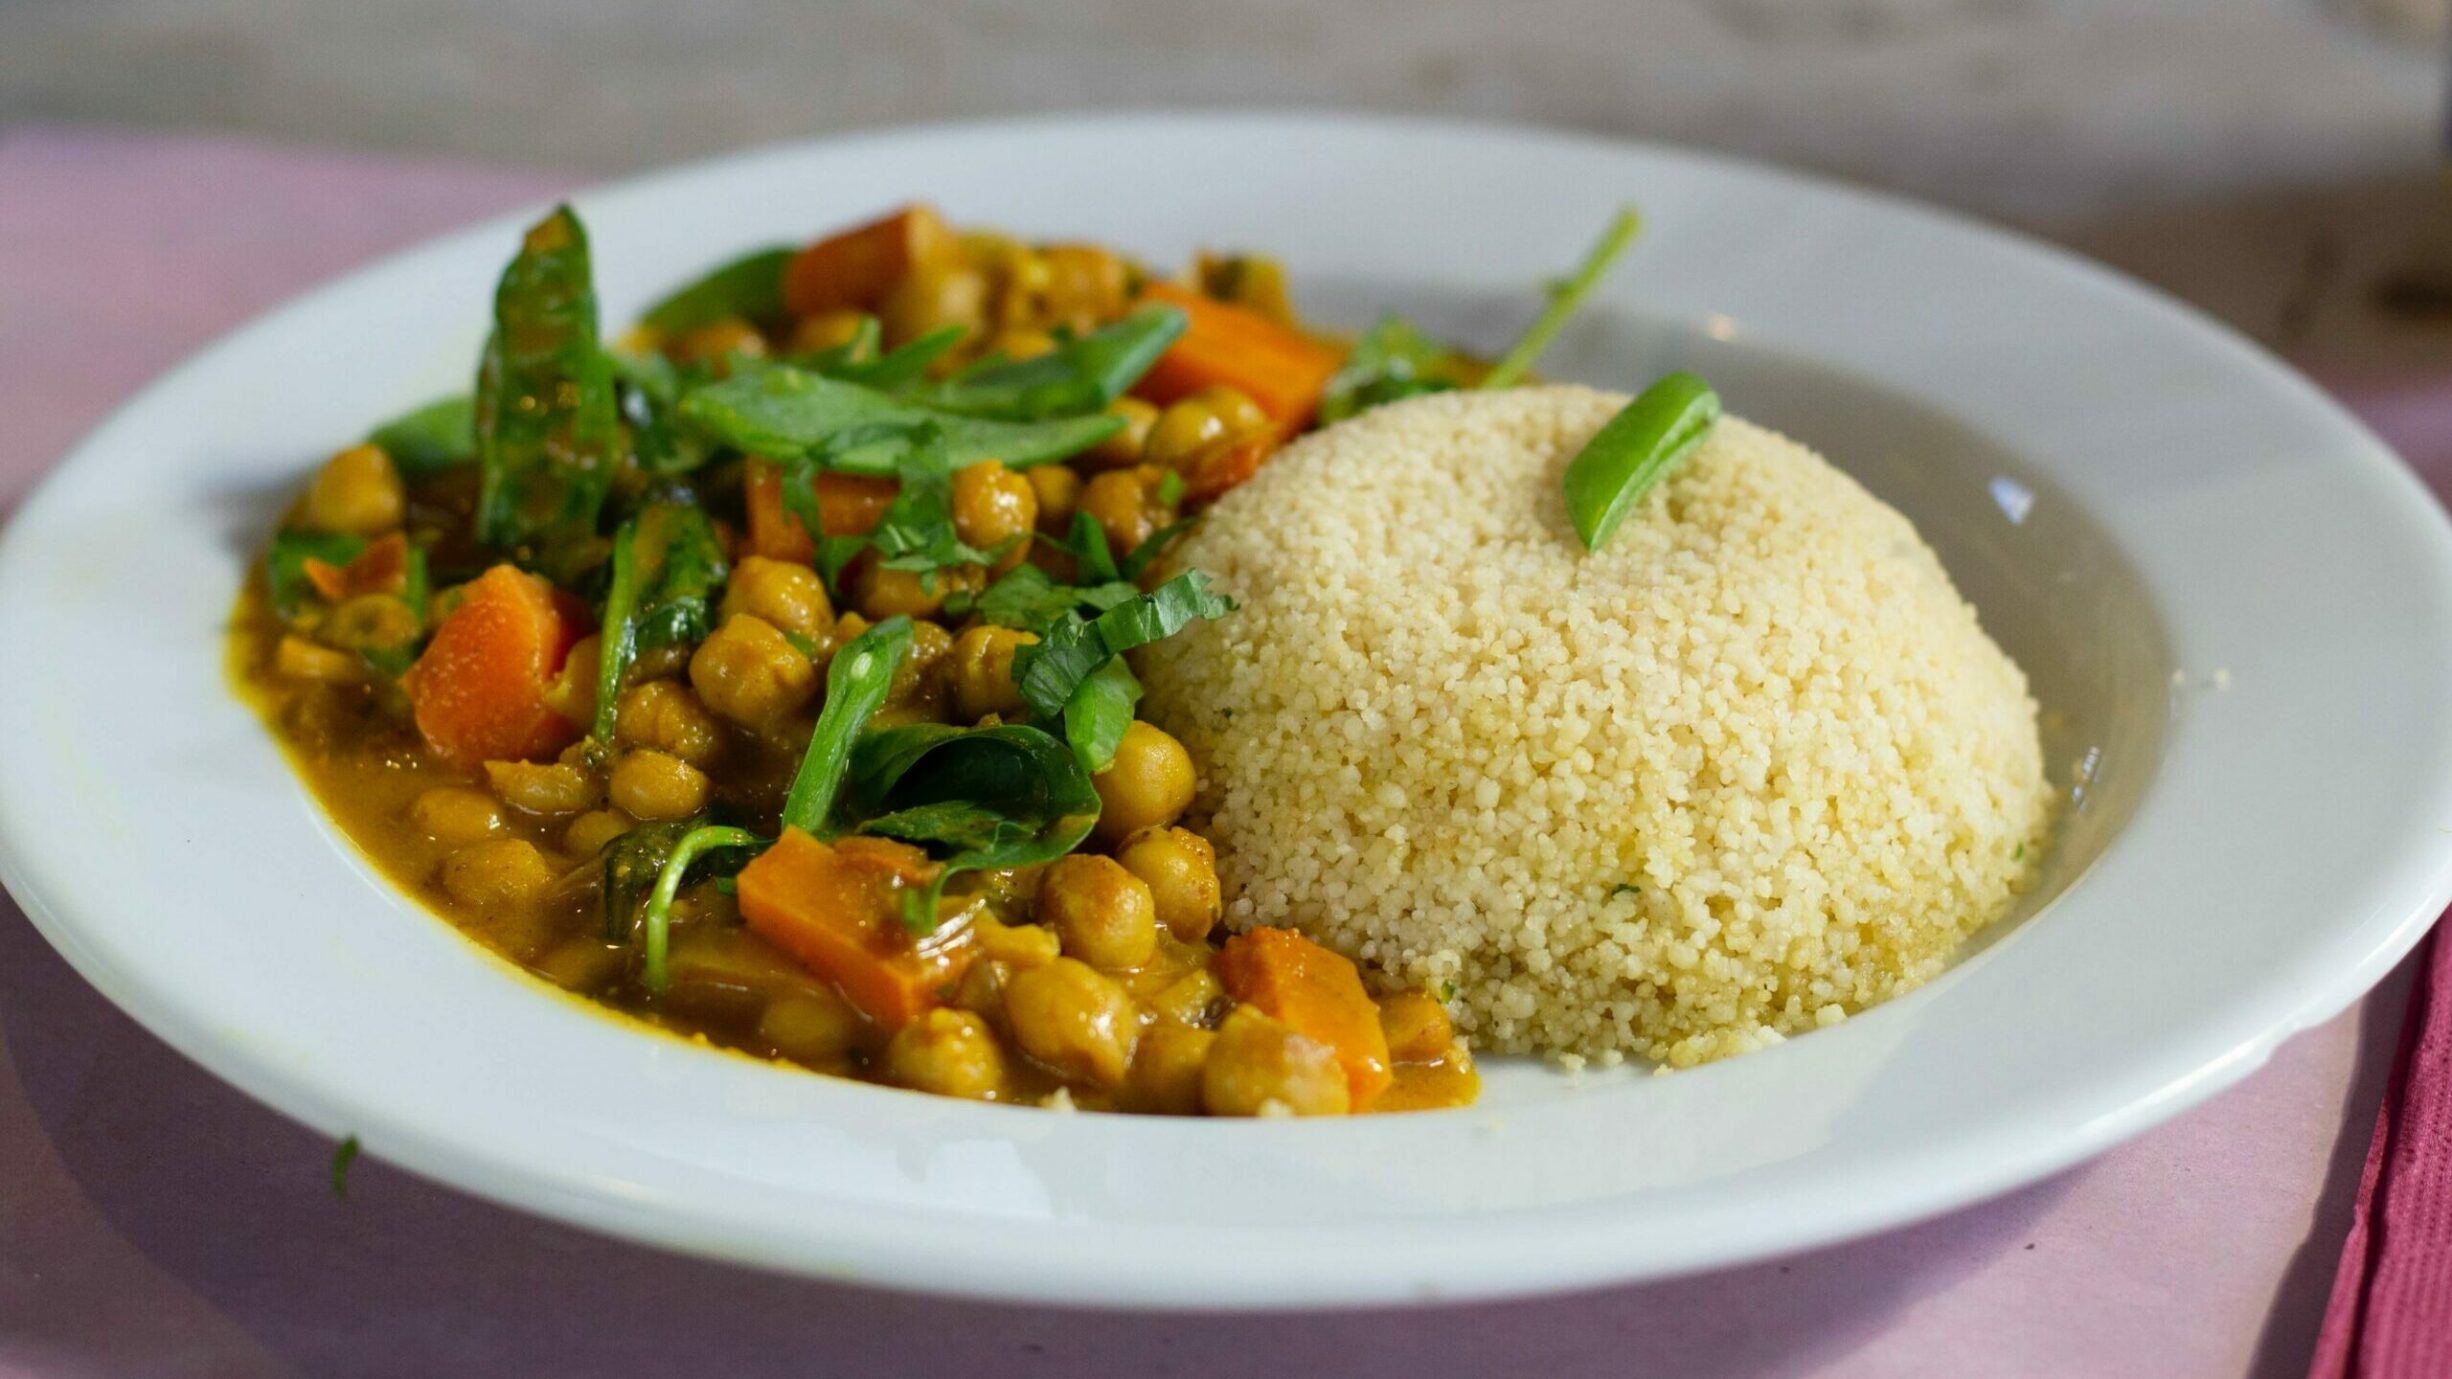 bowl of couscous and vegetables